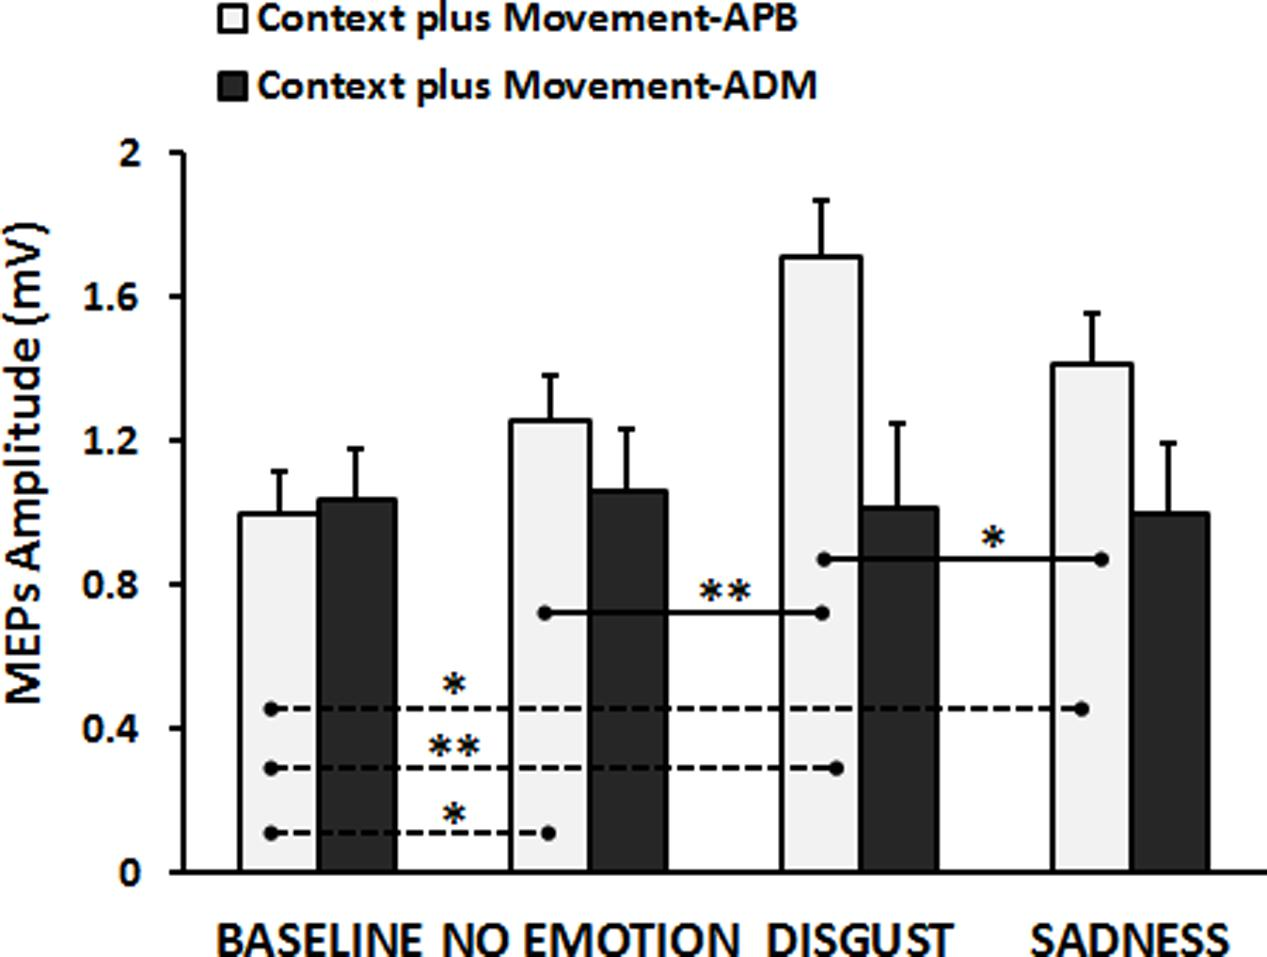 Frontiers | An Emotion-Enriched Context Influences the Effect of